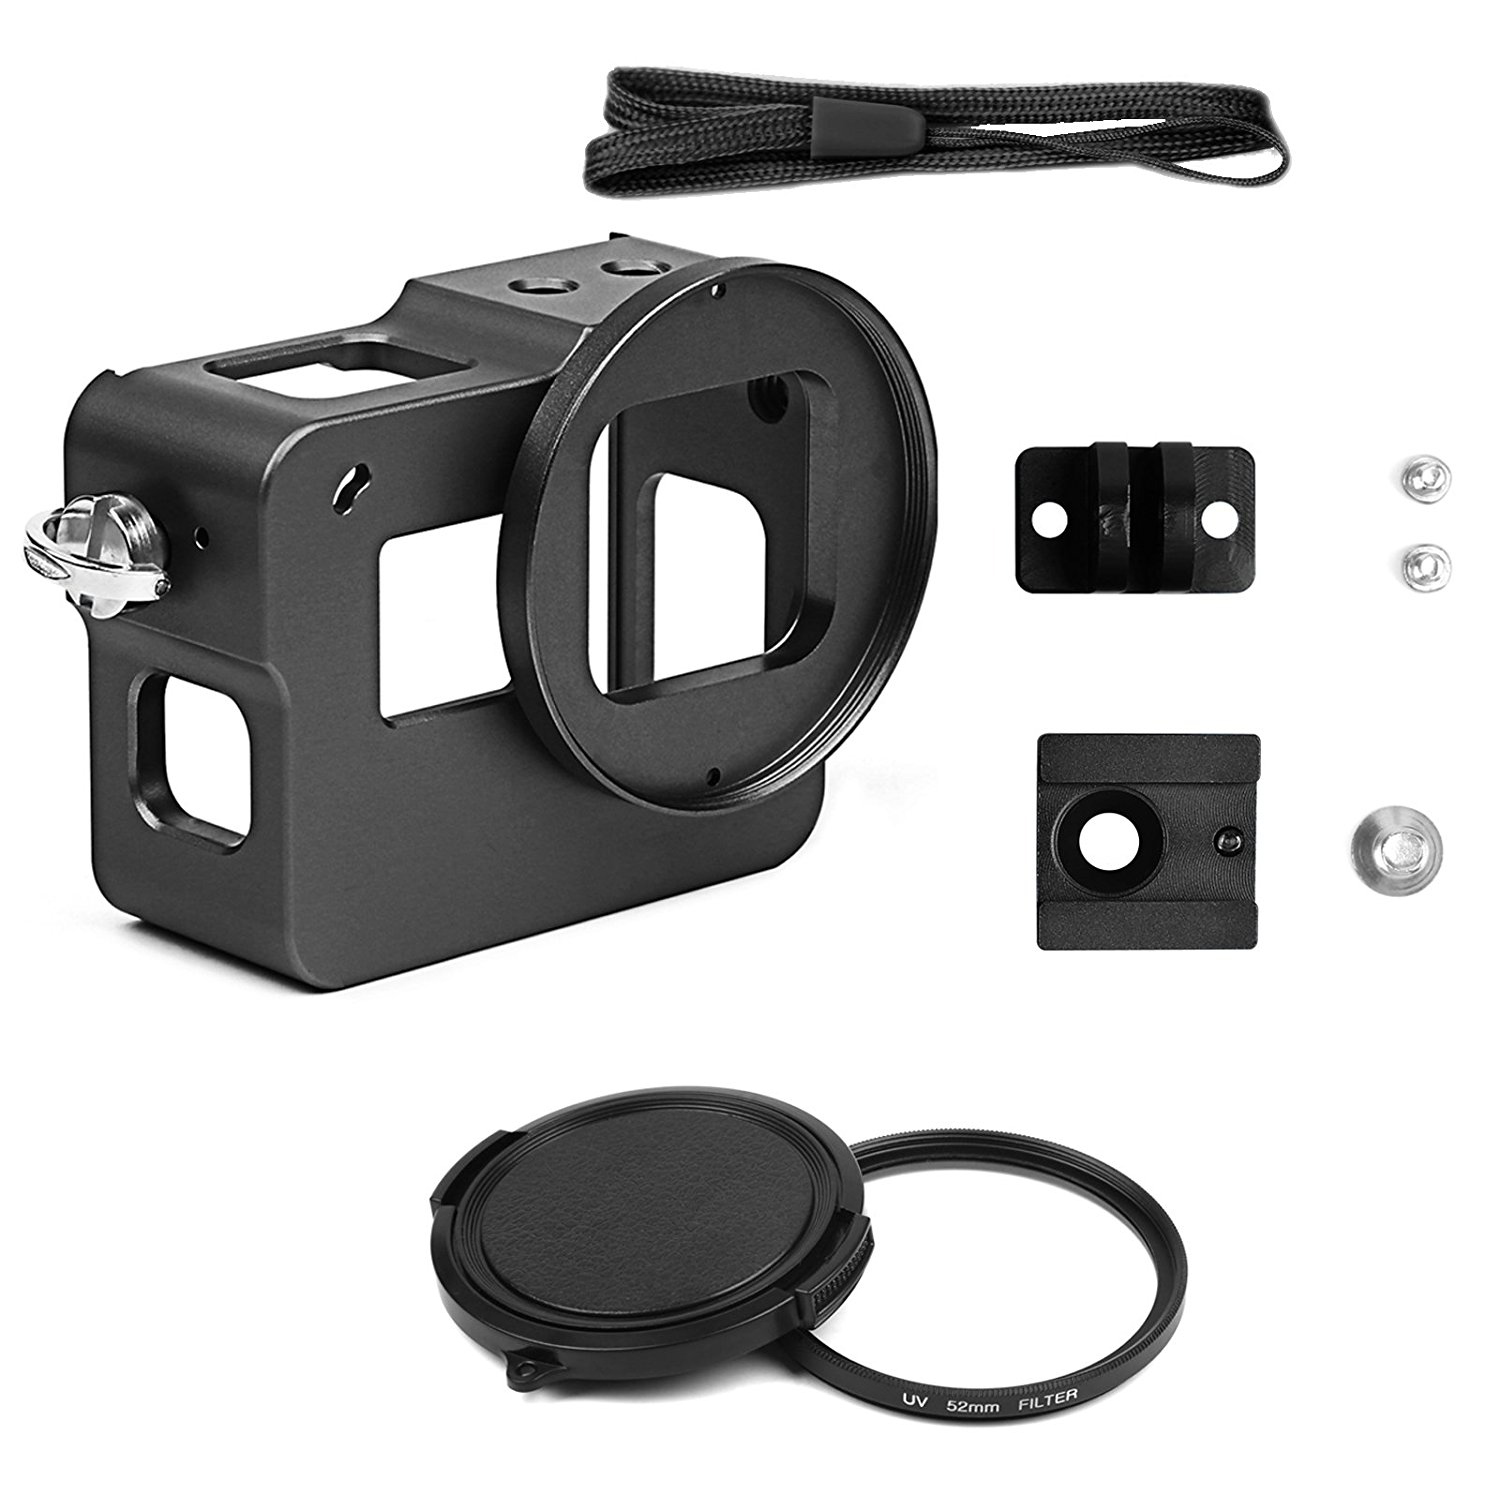 SHOOT Protective Shell Aluminium Alloy Metal Case with 52mm UV Filter, Rear Cover, Hot Shoe for Gopro 5(Black)